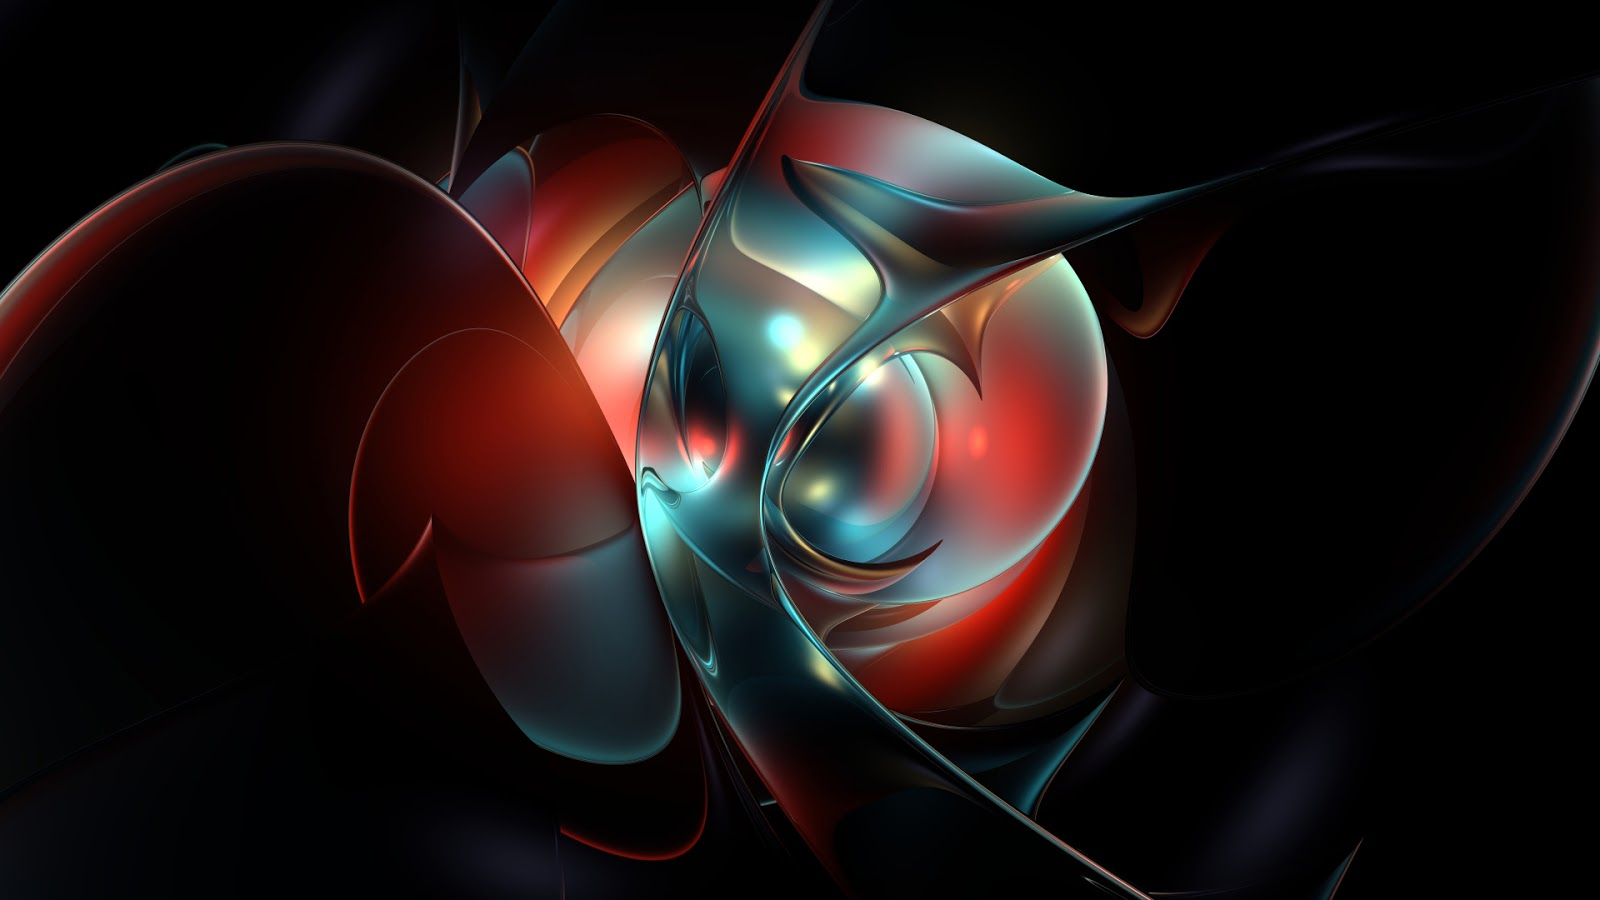 3d Abstrato Hd Wallpaper E Fotos Em Hd